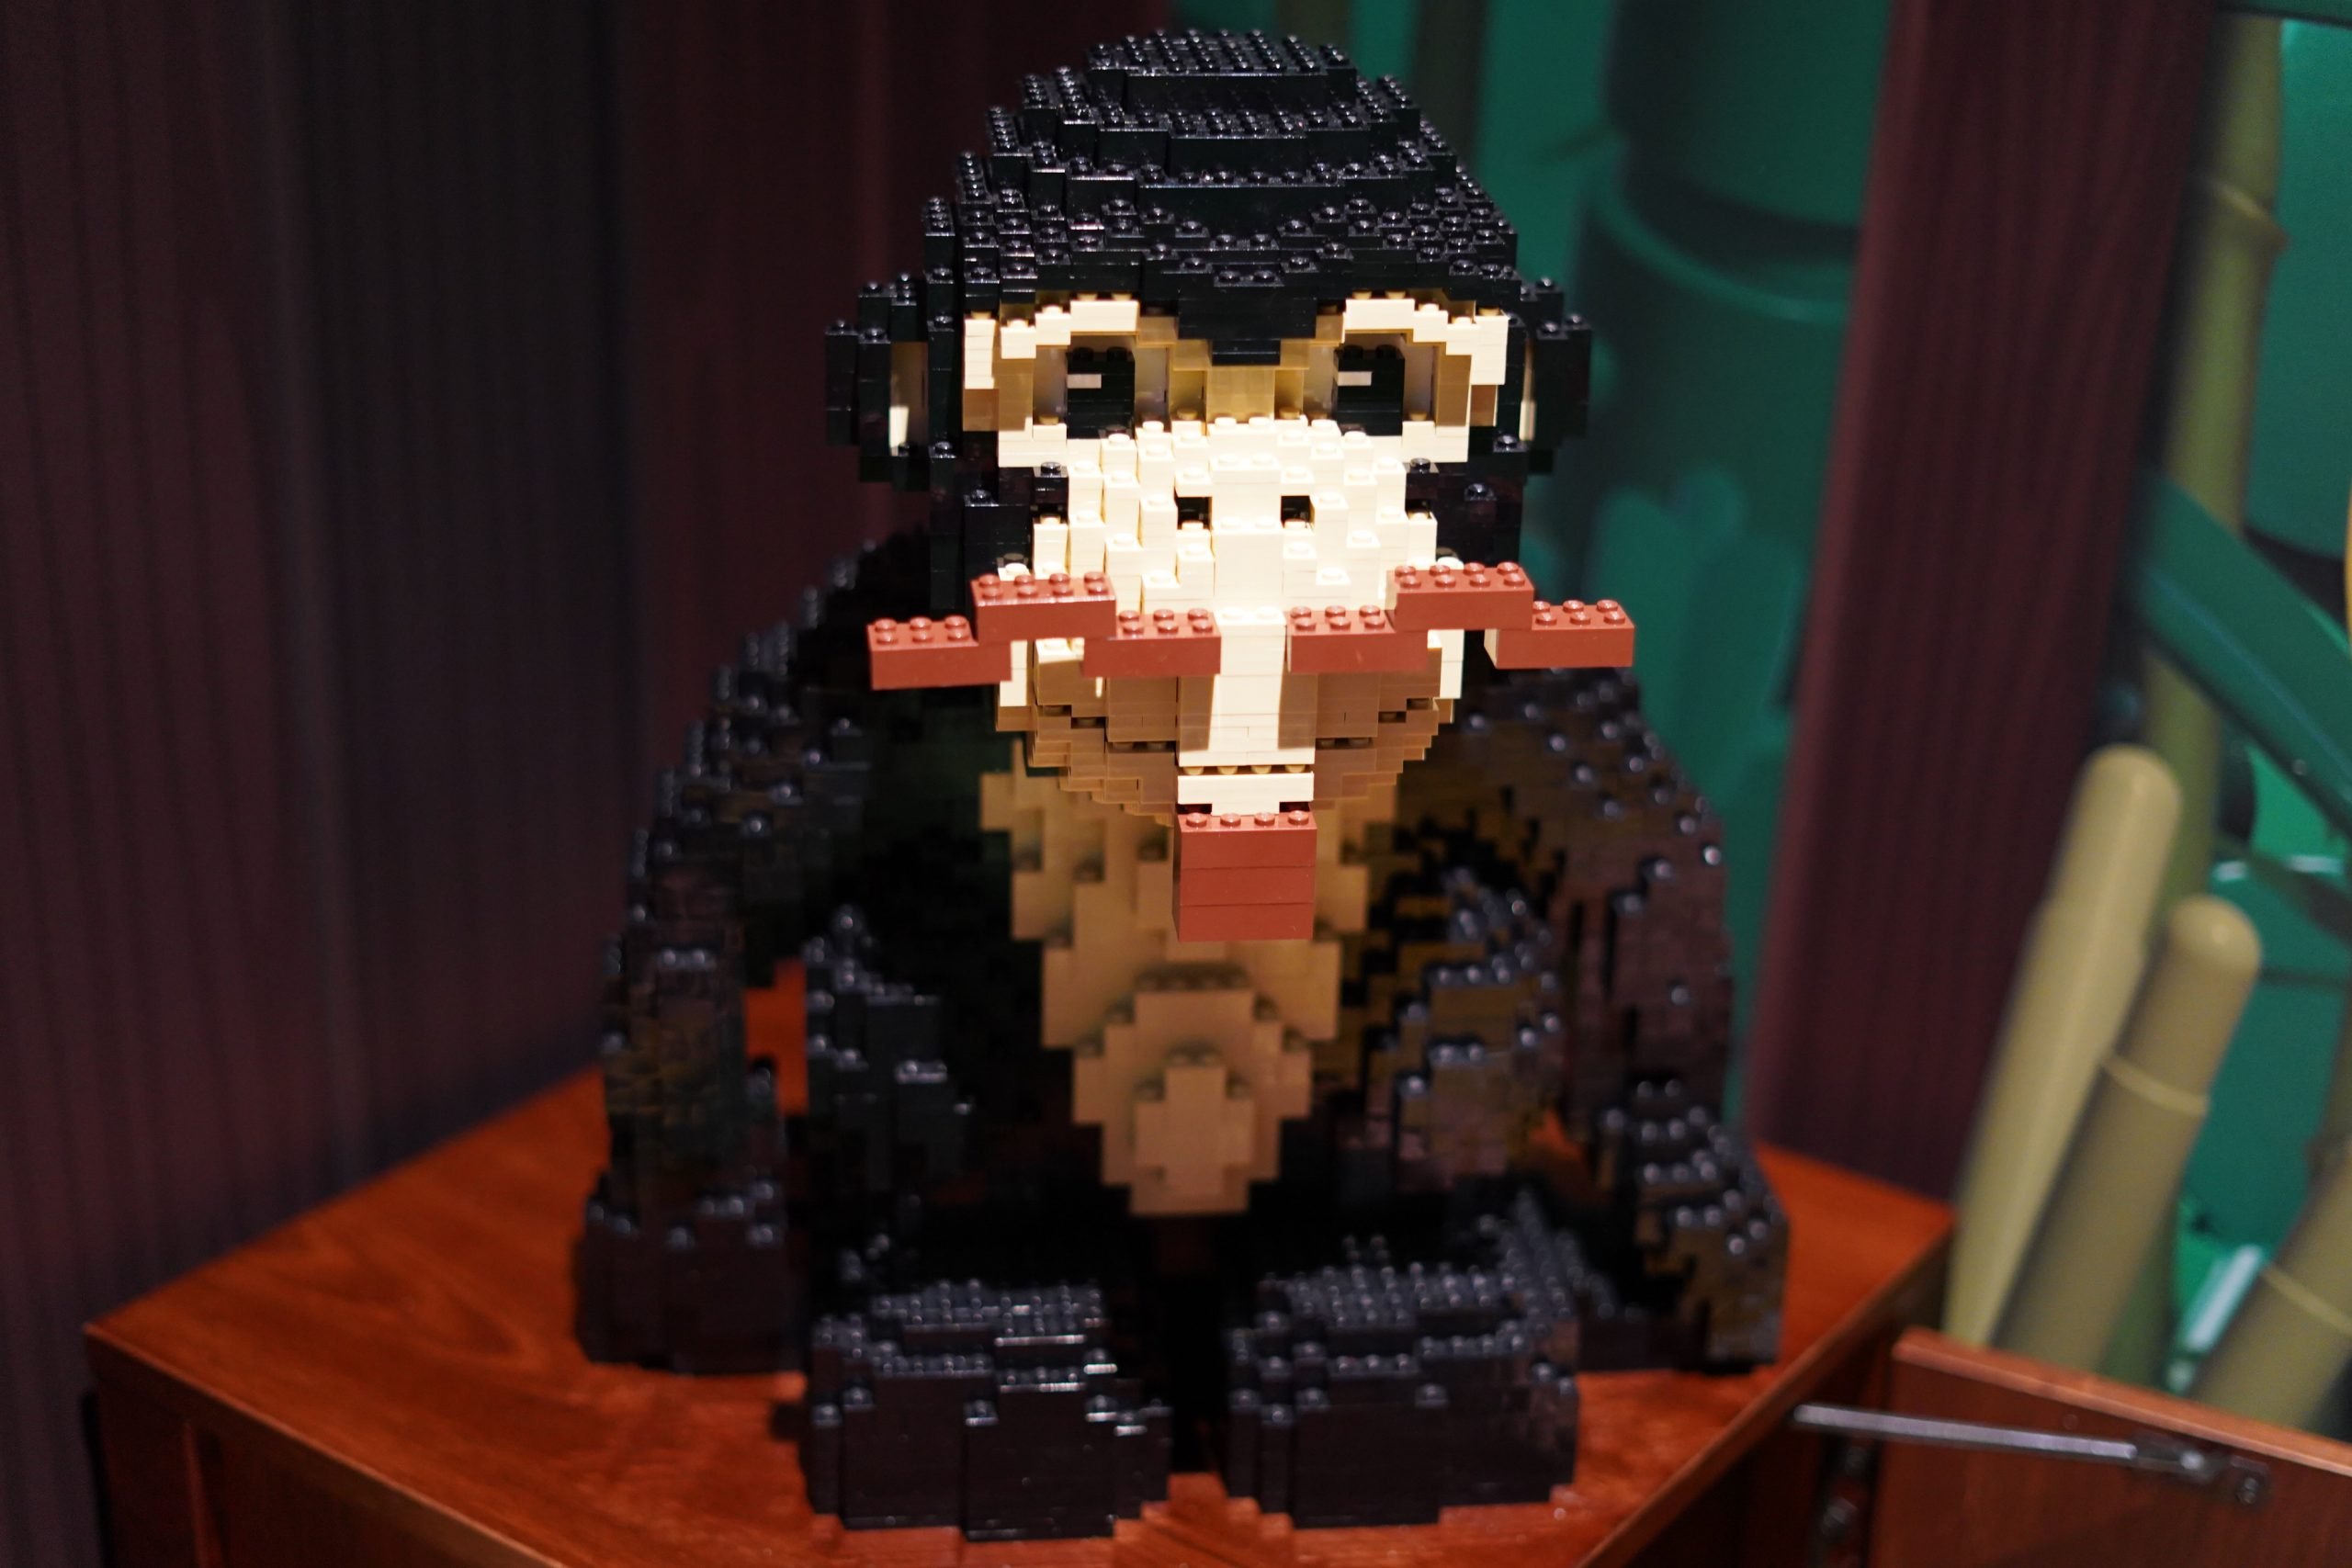 Monkey lego display at Pirate Island Hotel.   A Guide to LEGOLAND Hotels in Florida